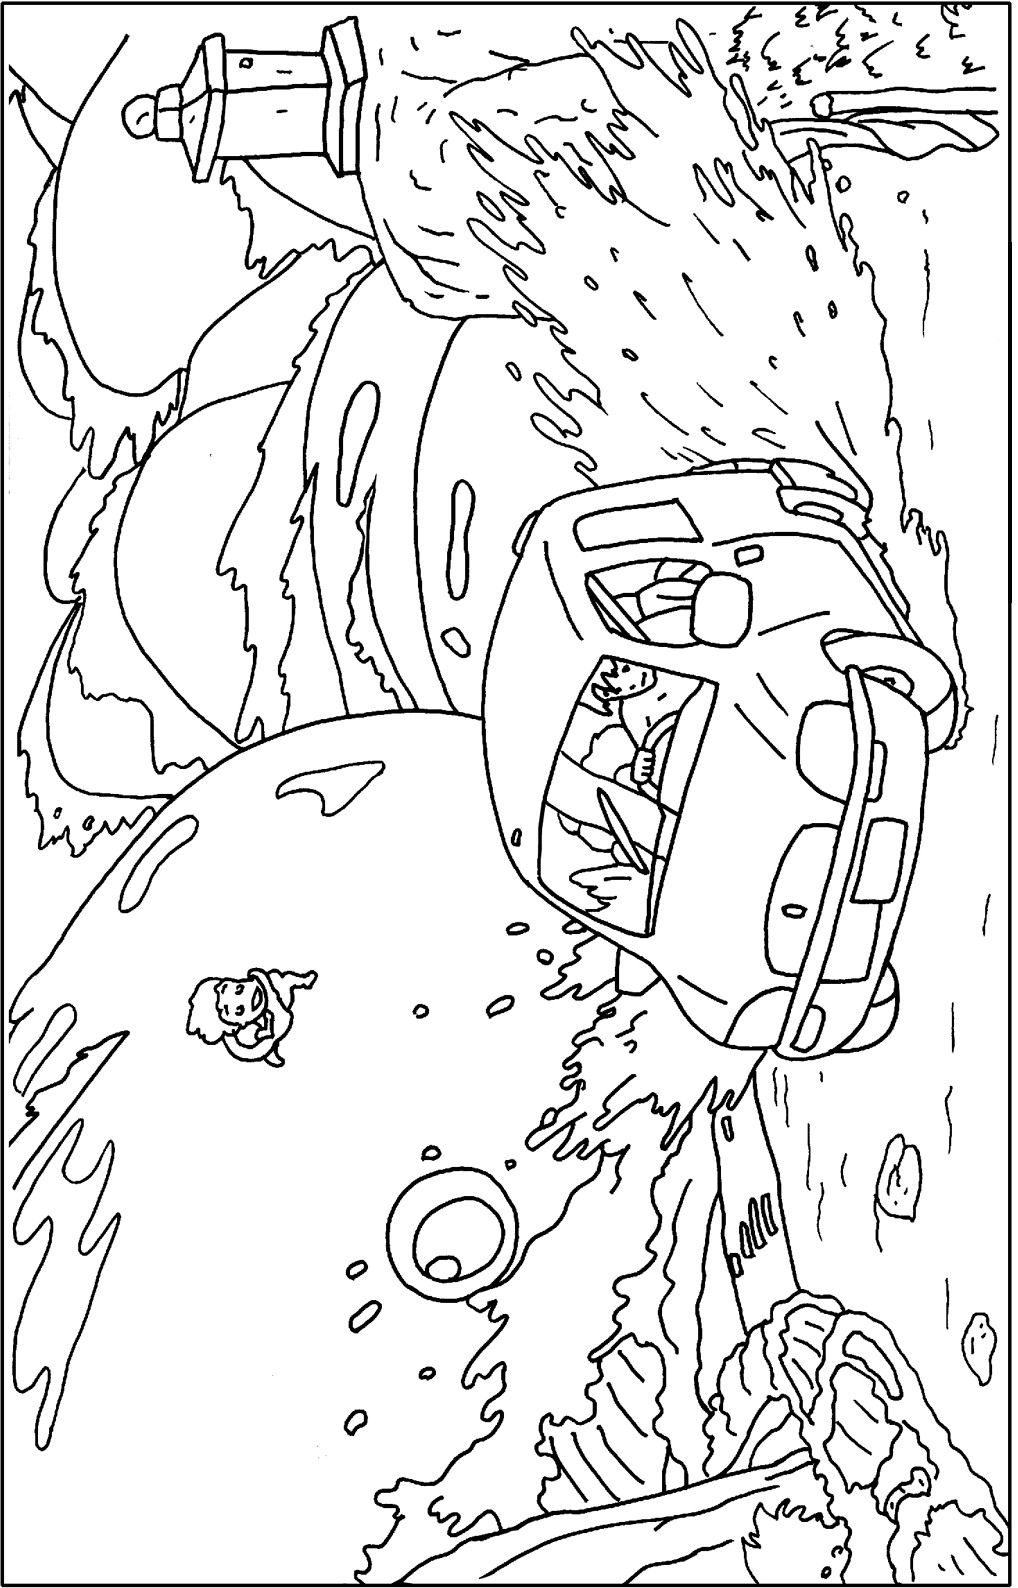 Ponyo Coloring Pages Hicoloringpages Com This Was Saved As Free